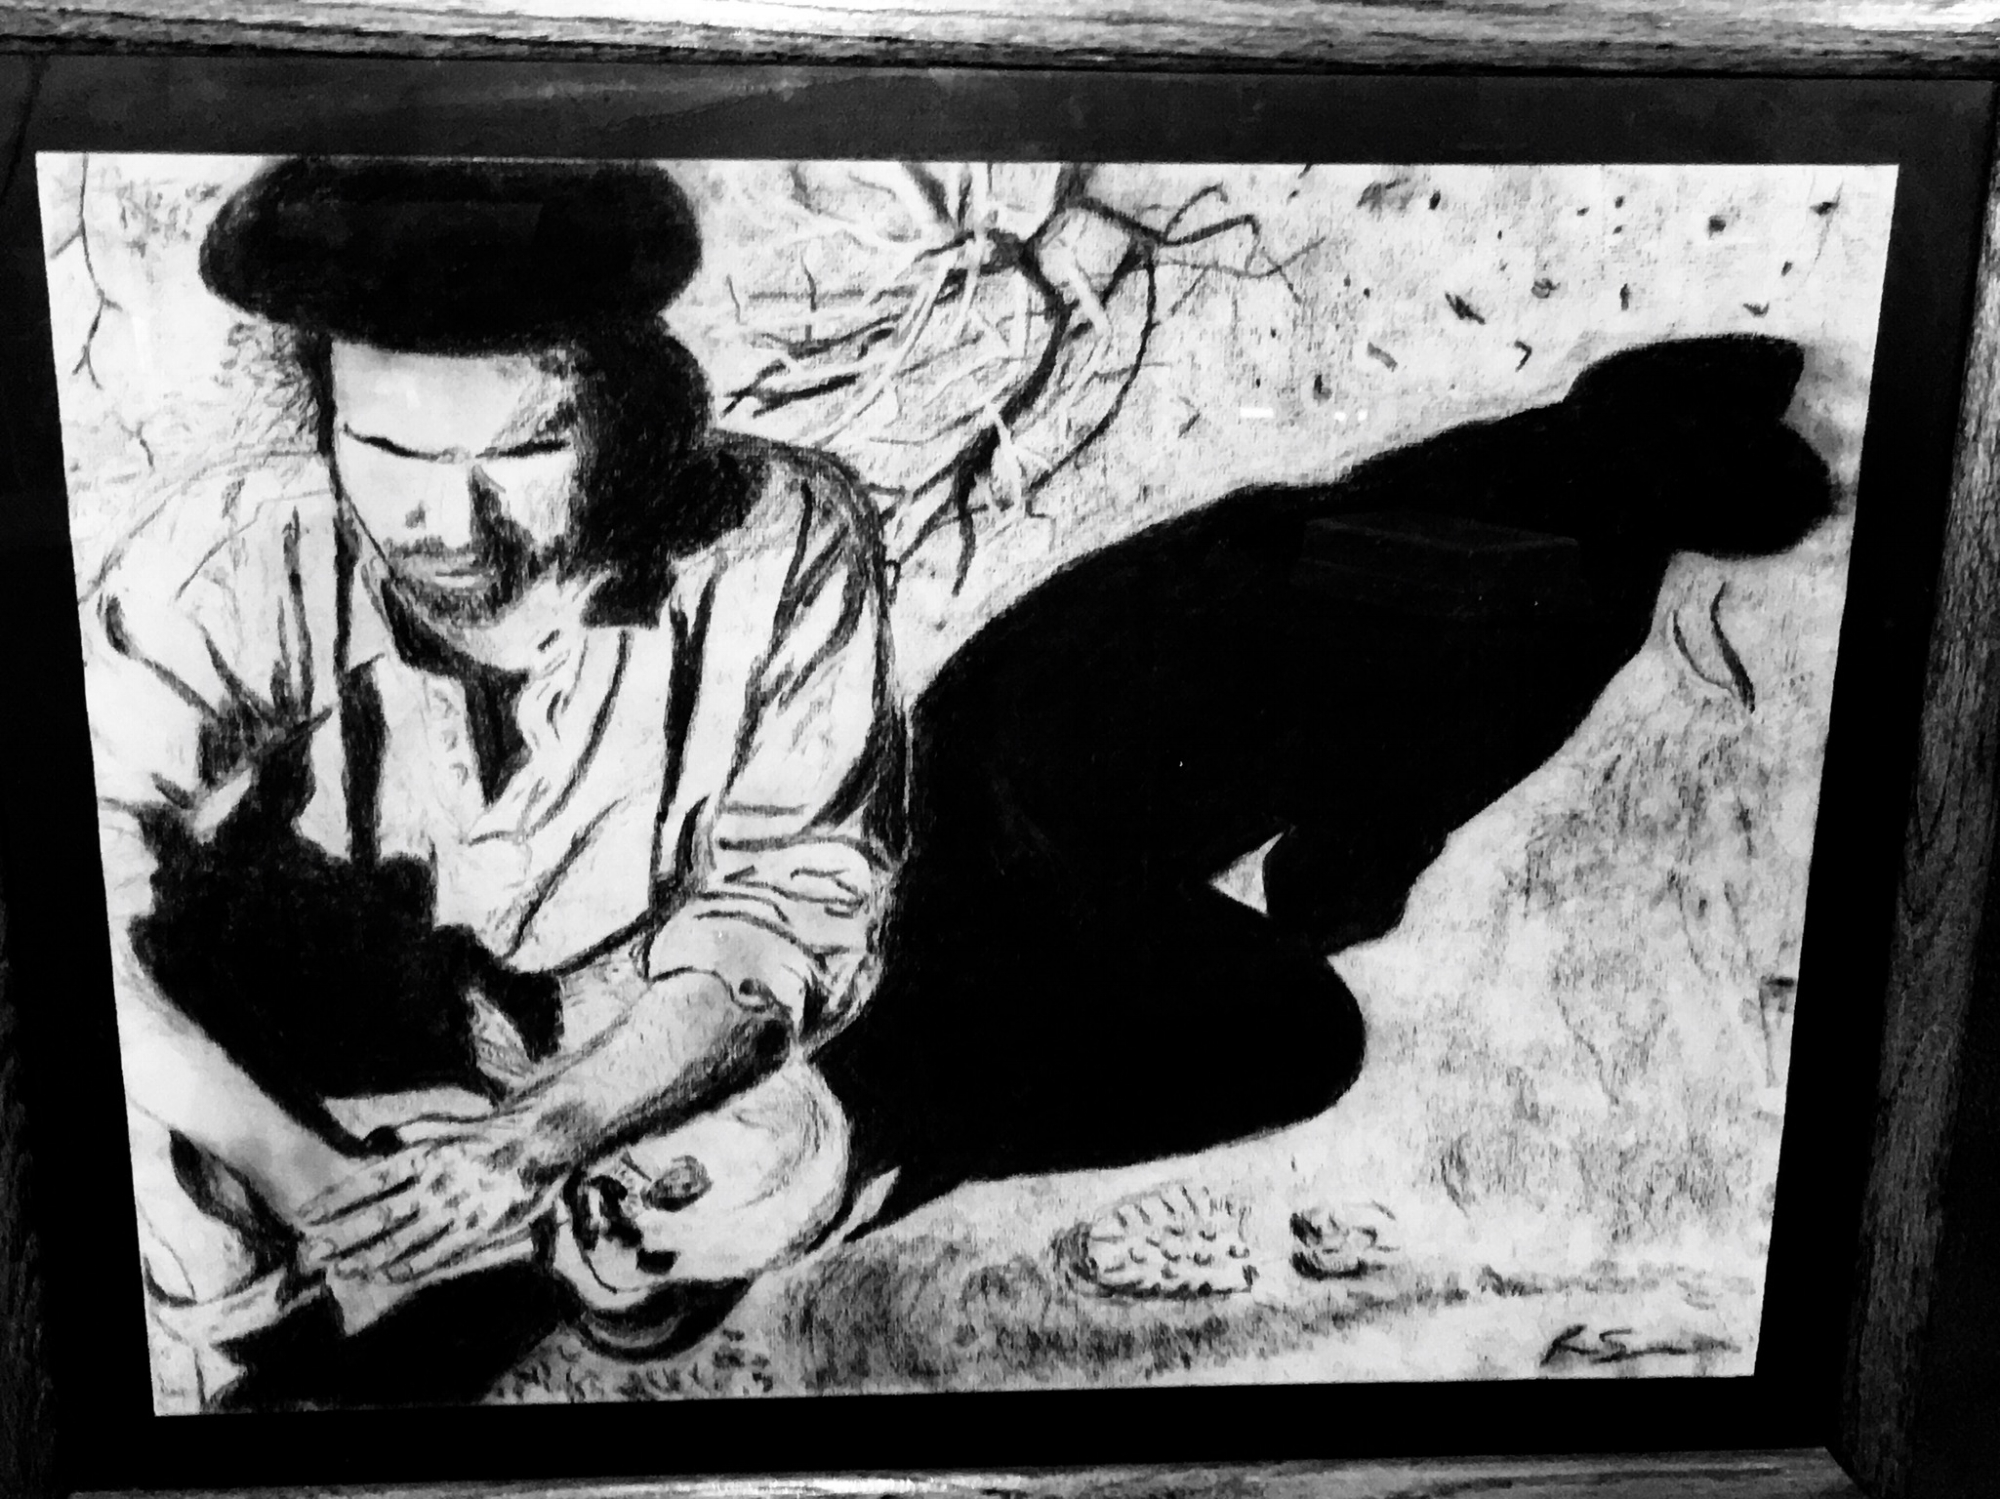 Yes, I like U2, but the real inspiration for the U2 drawings was all the detail in Anton Corbijn's photography.